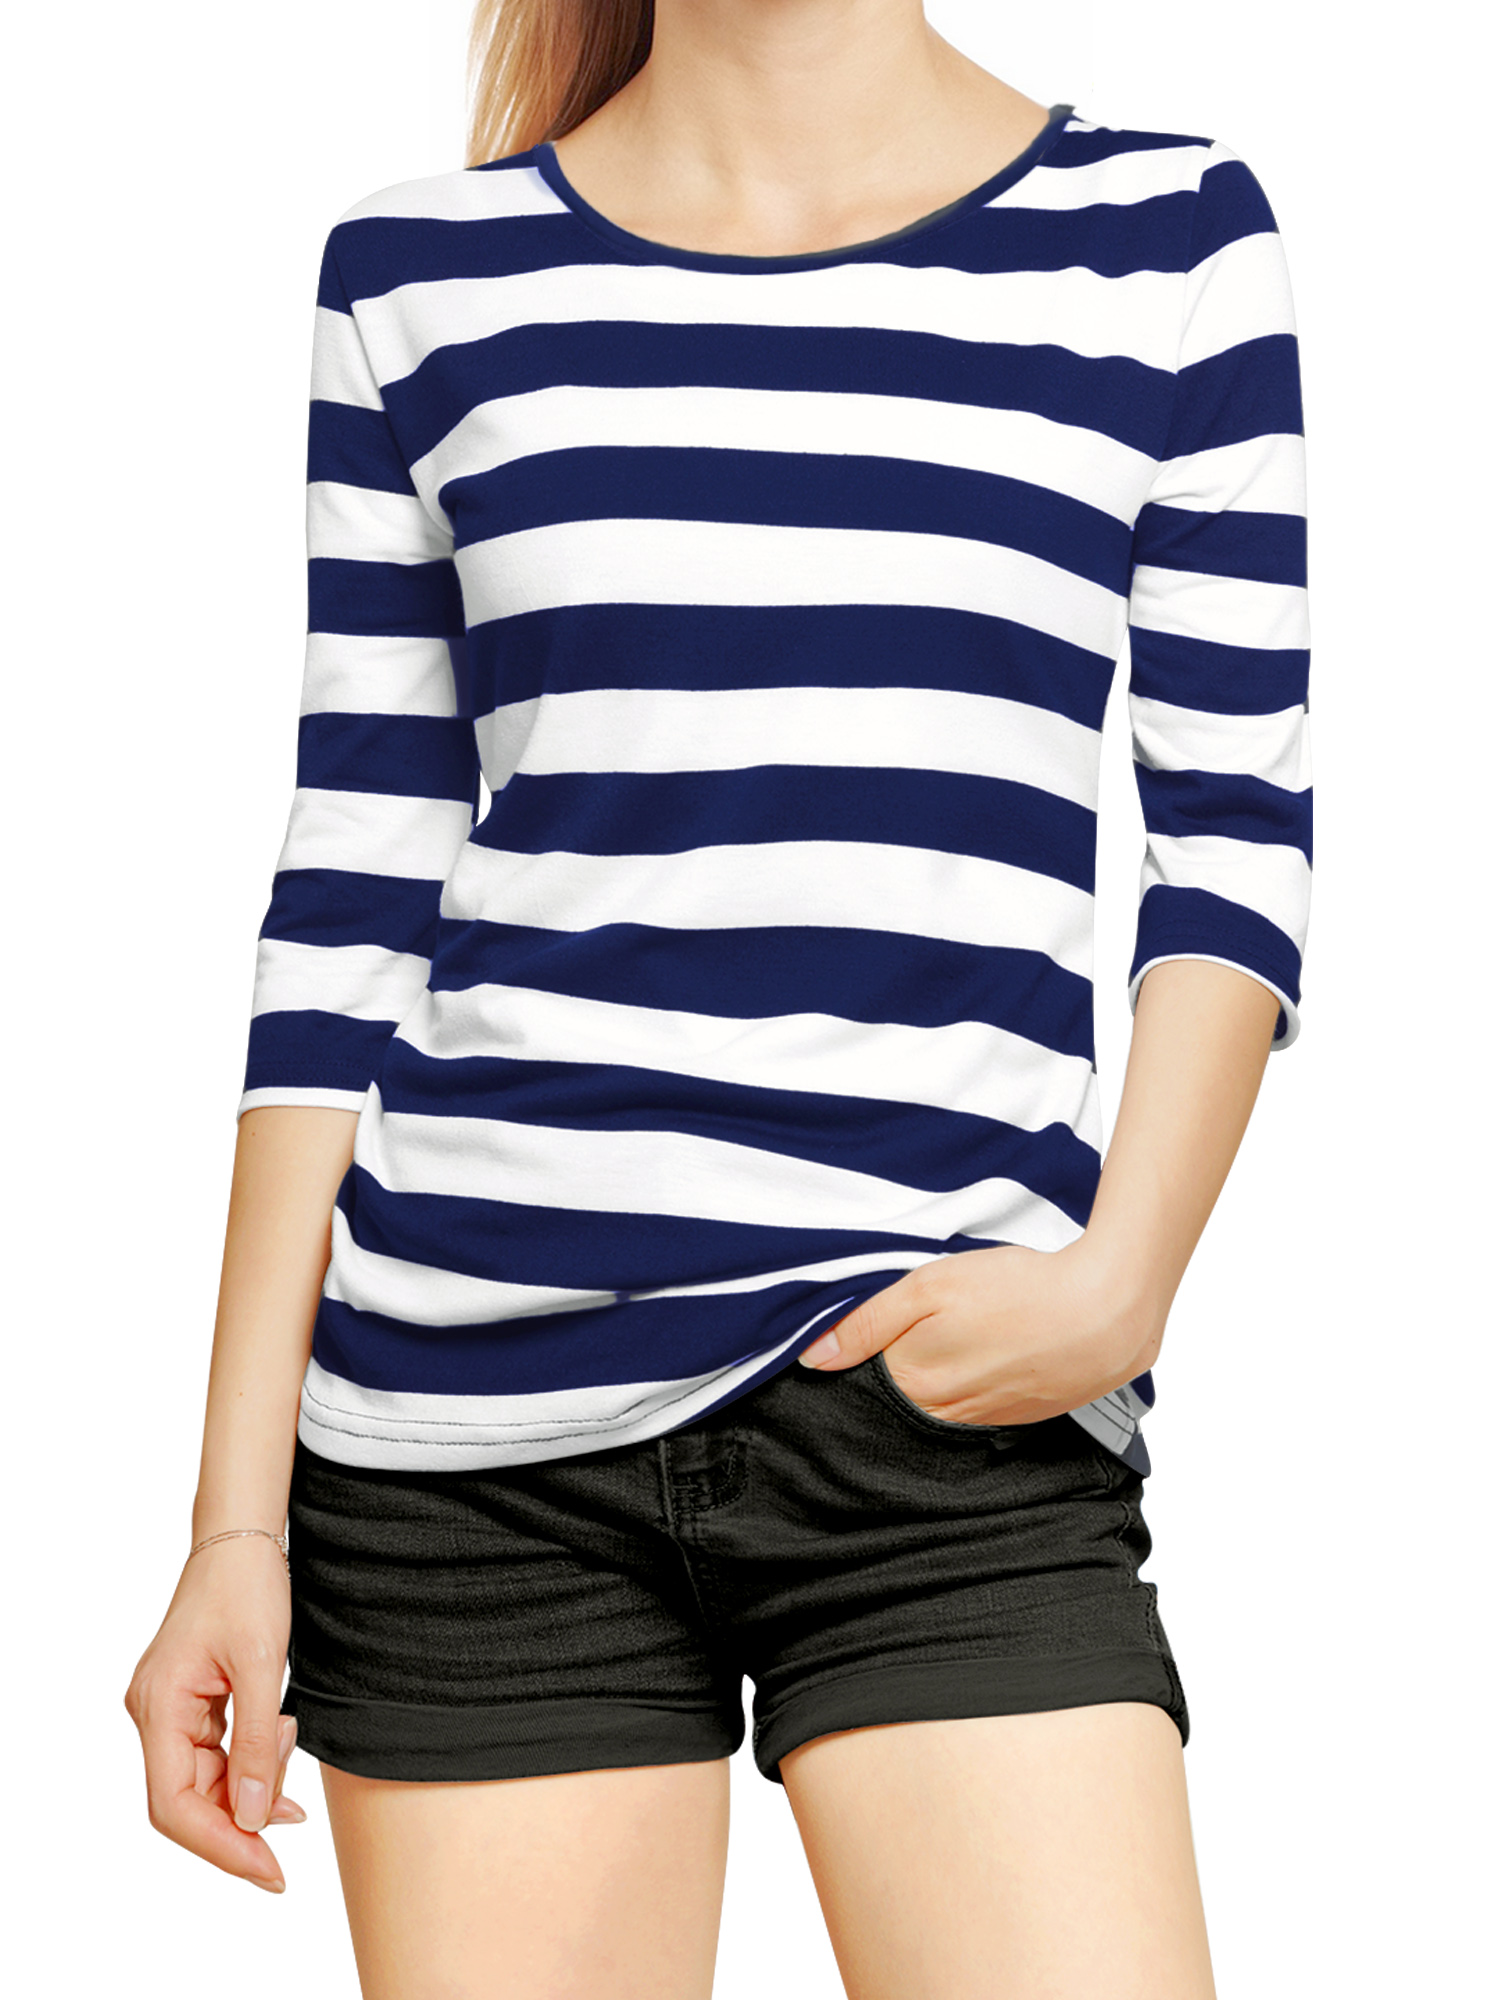 Women Half Length Sleeves Contrast Color Stripes Tee Dark Blue White XS